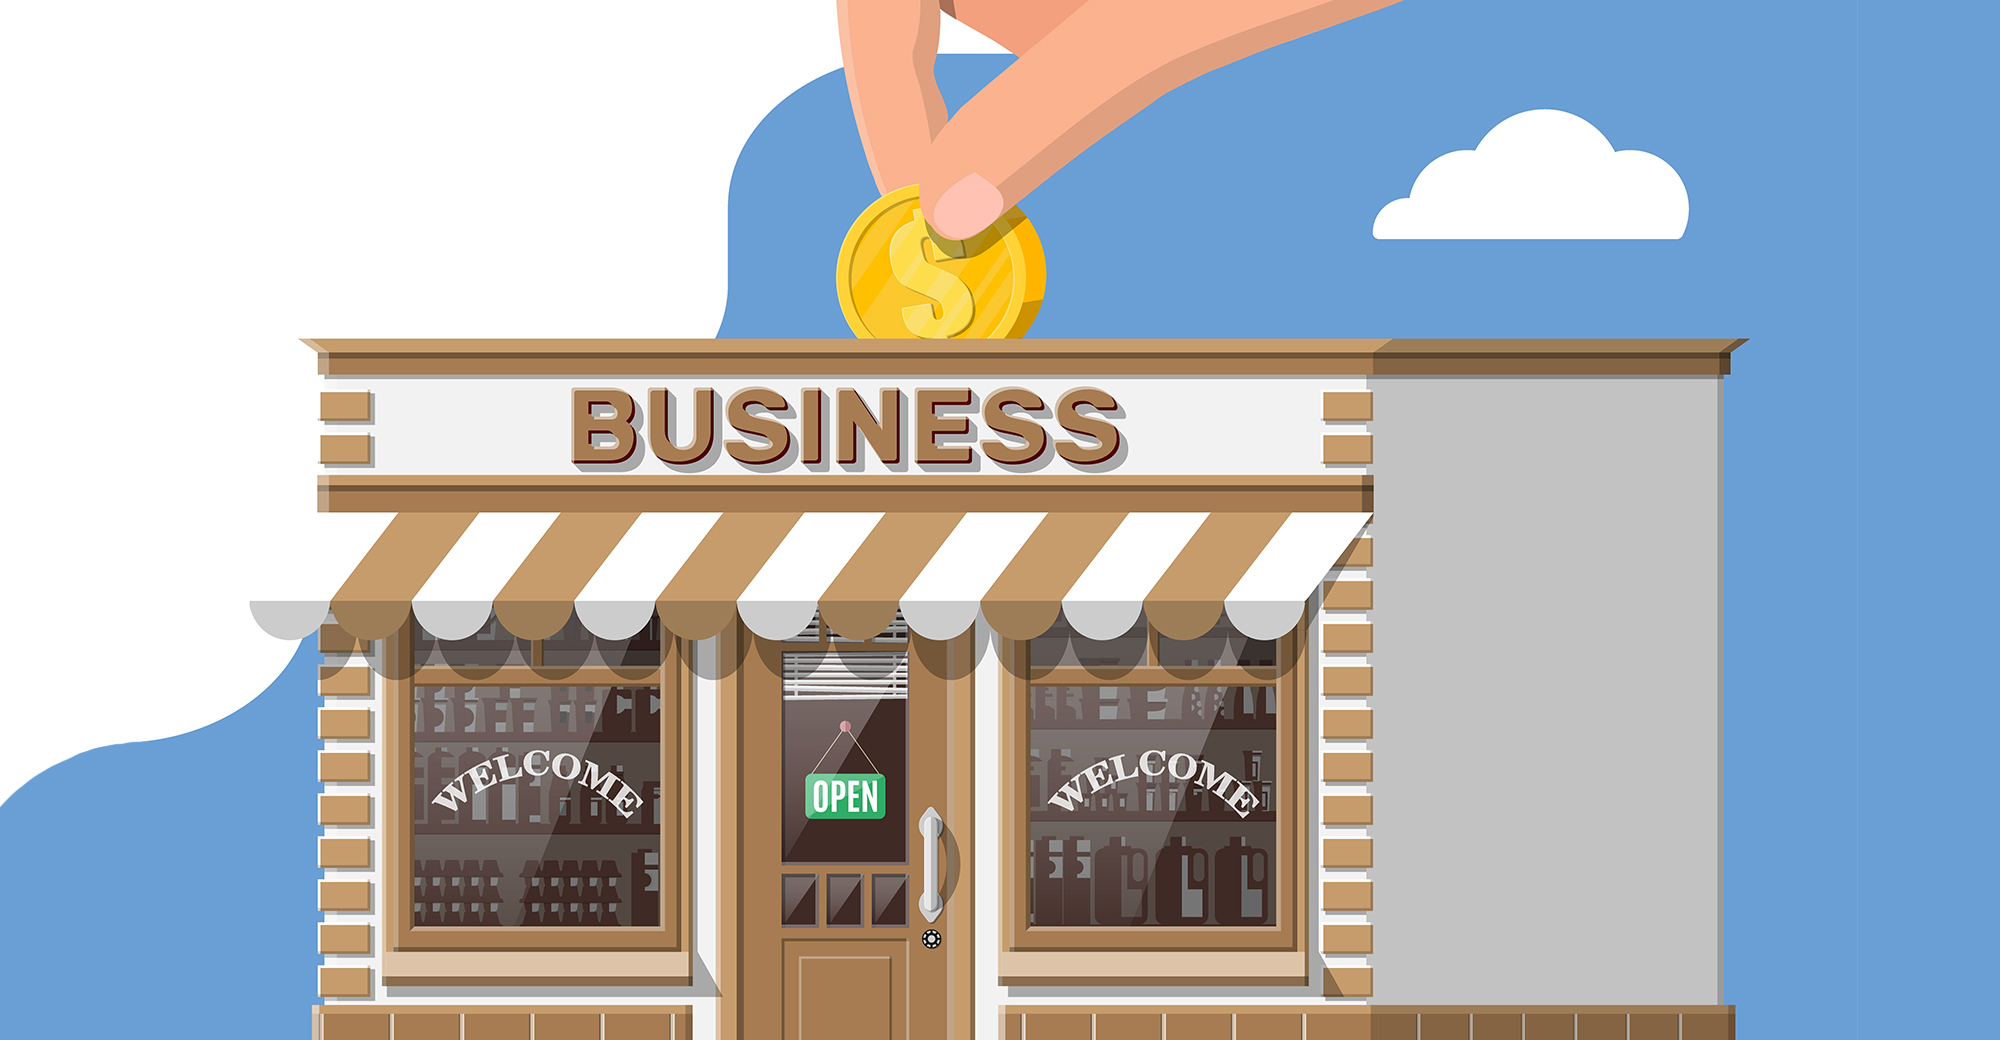 Access here alternative investment news about What Family Offices, Hnwis Think Of Retail Assets | National Real Estate Investor